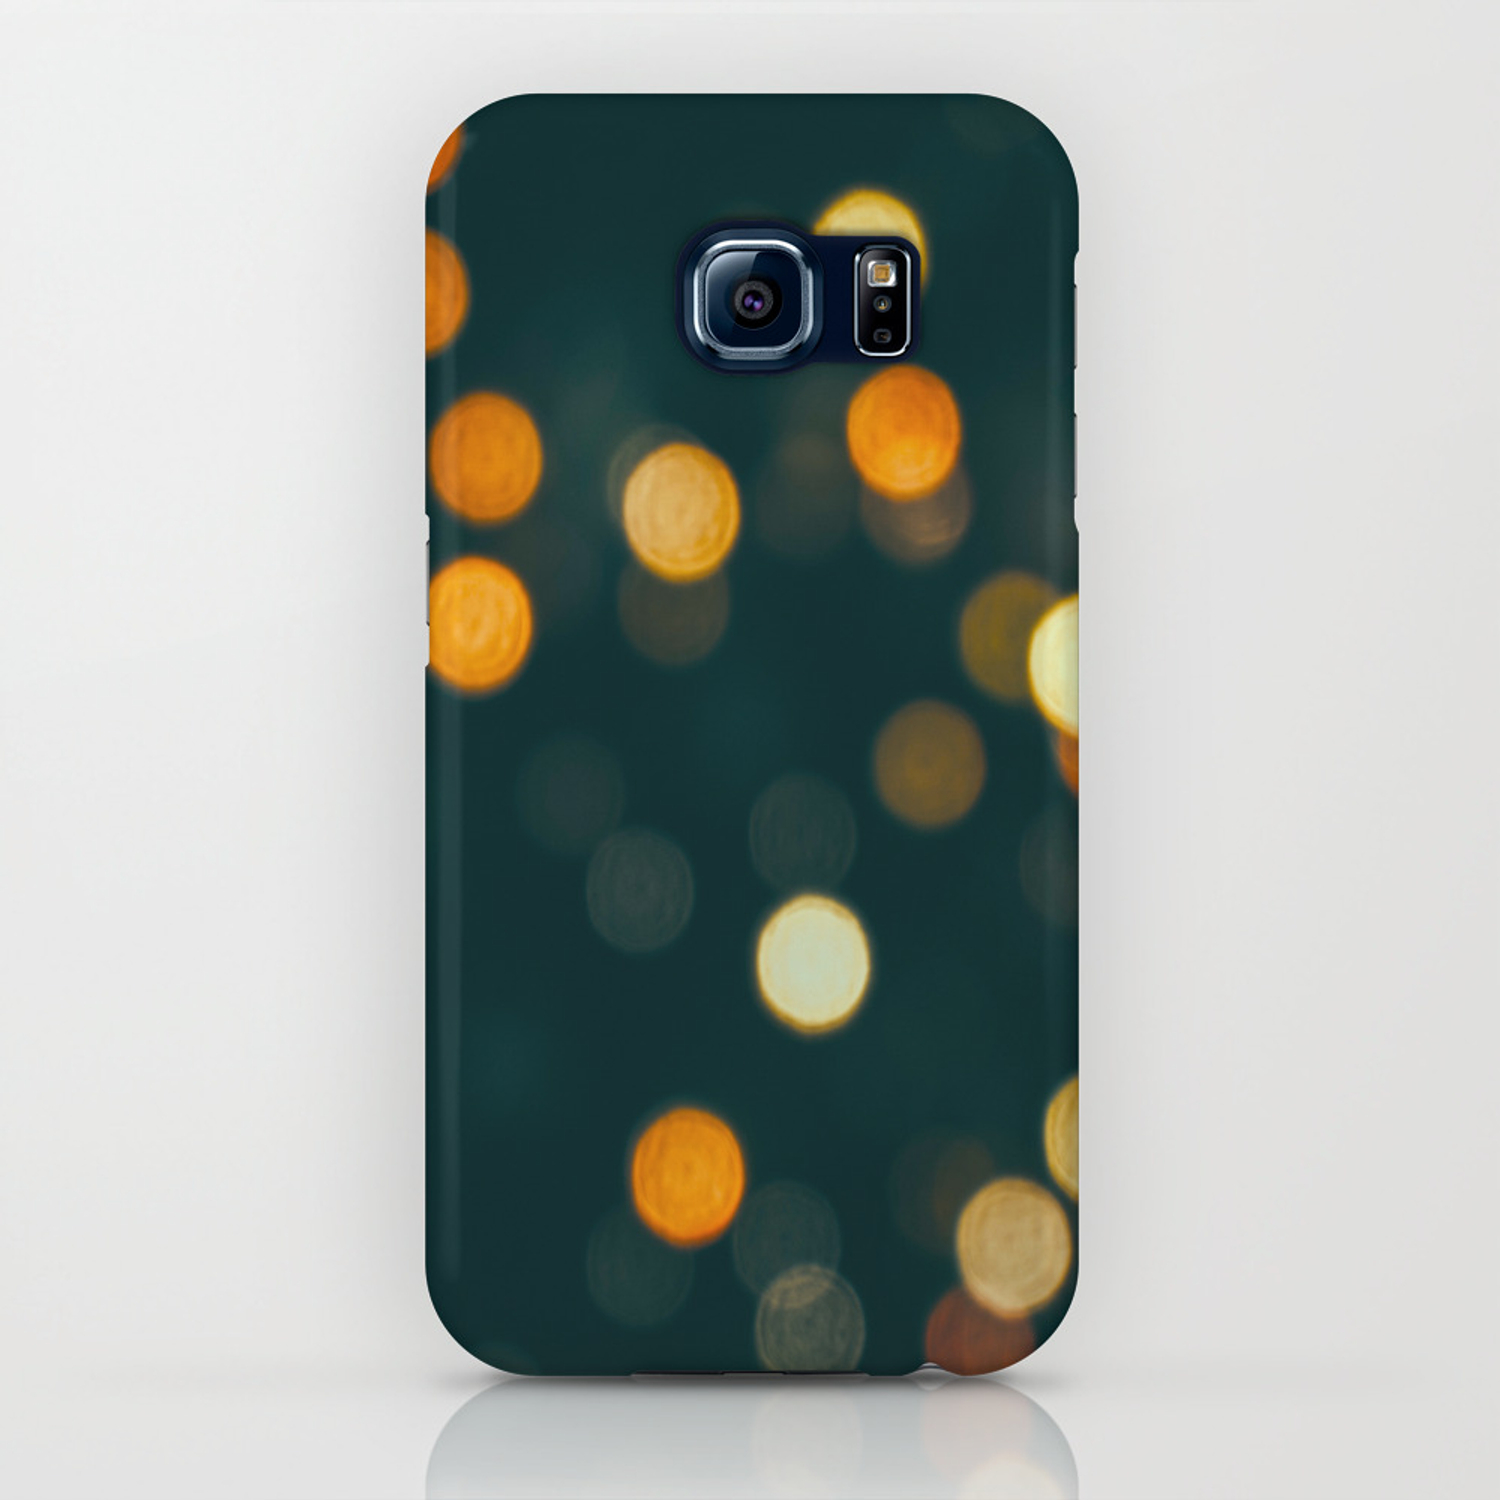 Bokeh Blurred Lights Shimmer Shiny Dots Spots Circles Out Of Focus Iphone Case